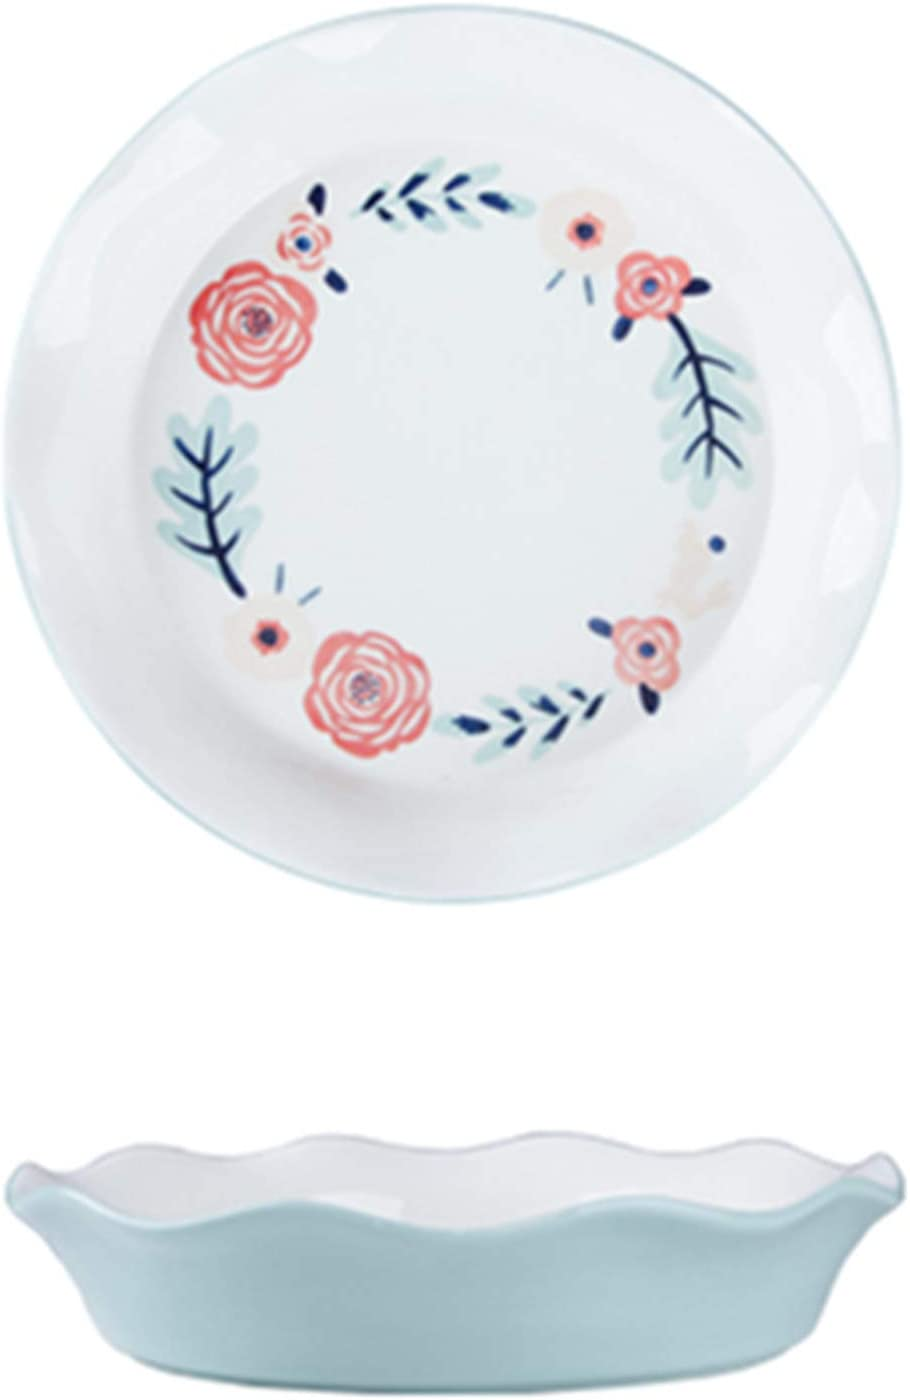 Porcelain Store Pie Pan Round Plate with Ruffled Max 81% OFF Baking Edge Dish